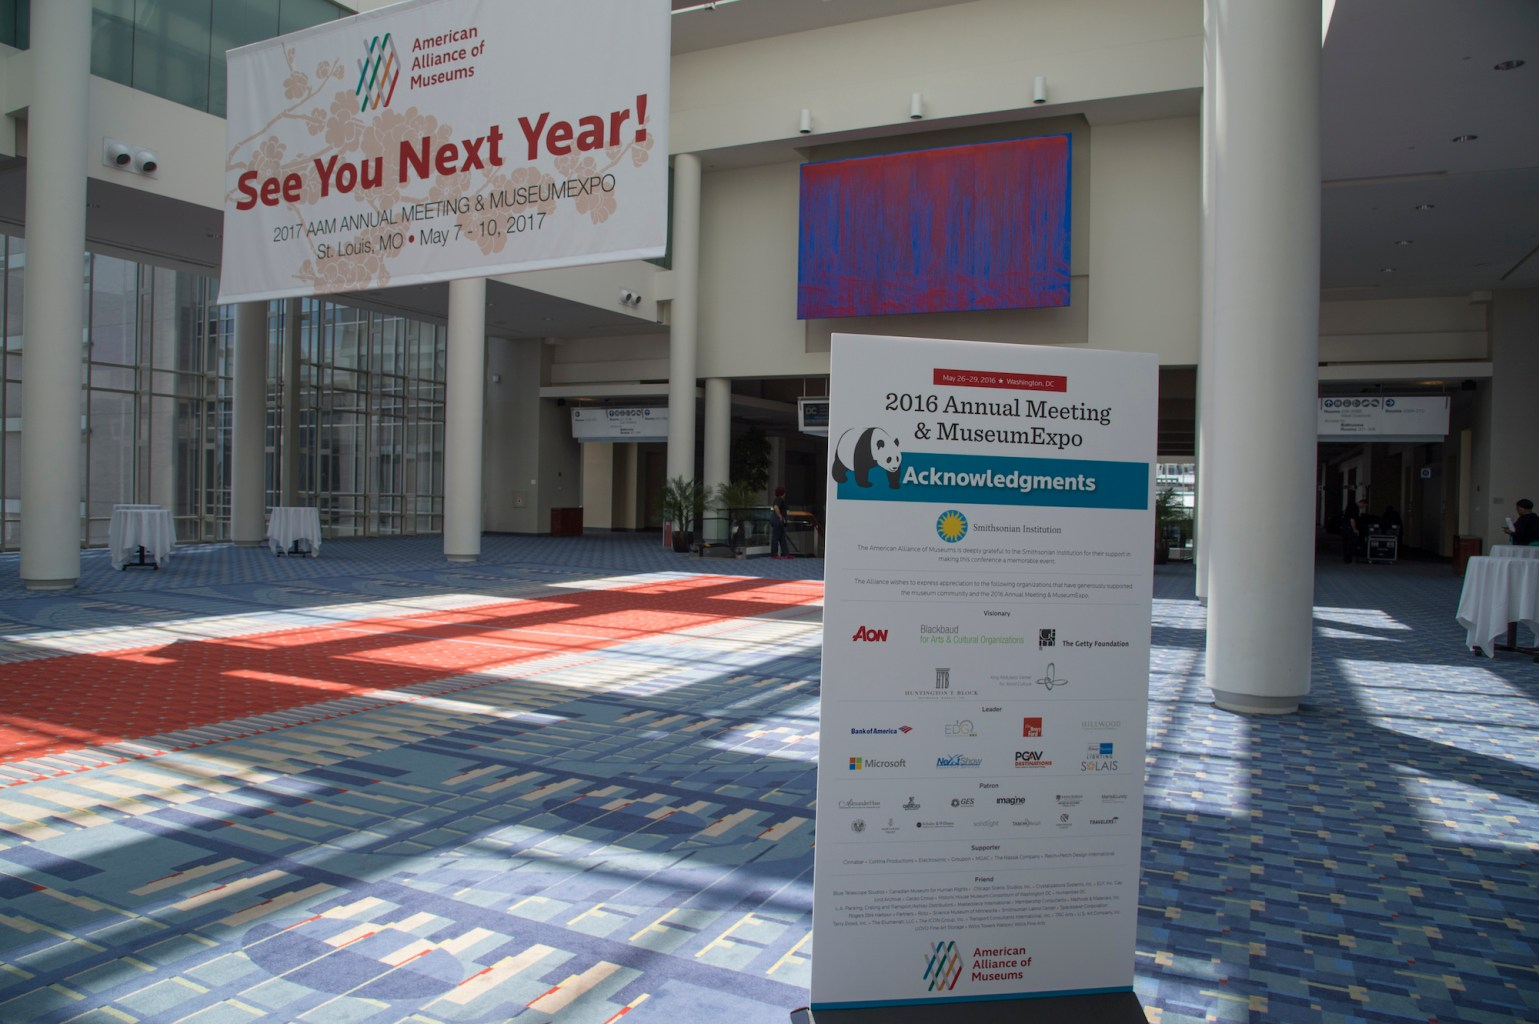 Image of a convention center with signs about the 2016 AAM Annual Meeting and MuseumExpo